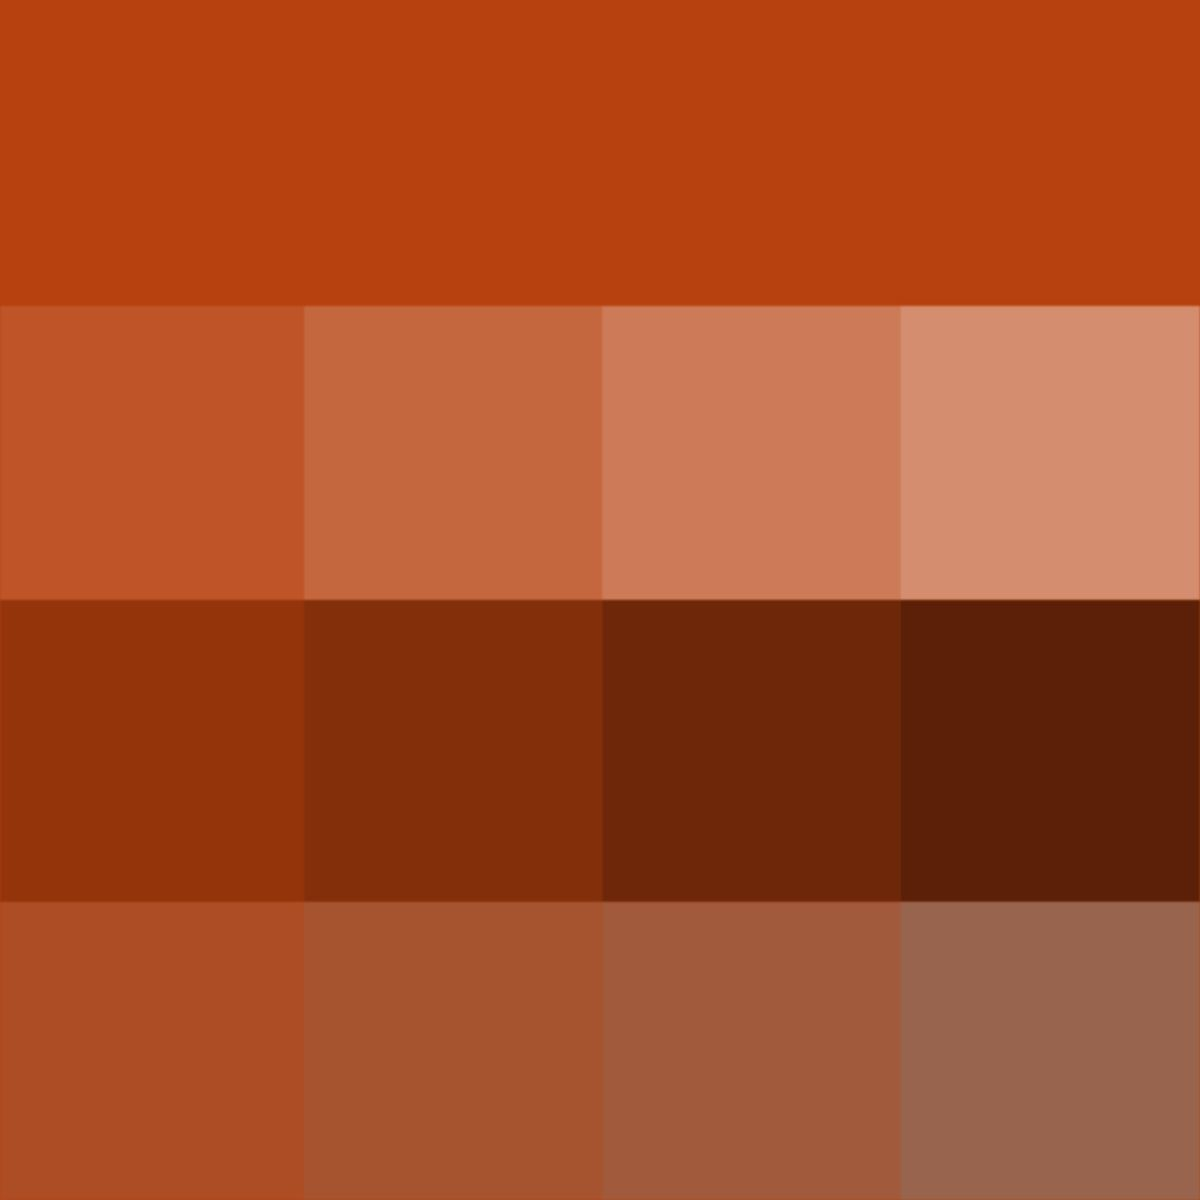 Rust Hue Tints Shades Tones Hue Pure Color With